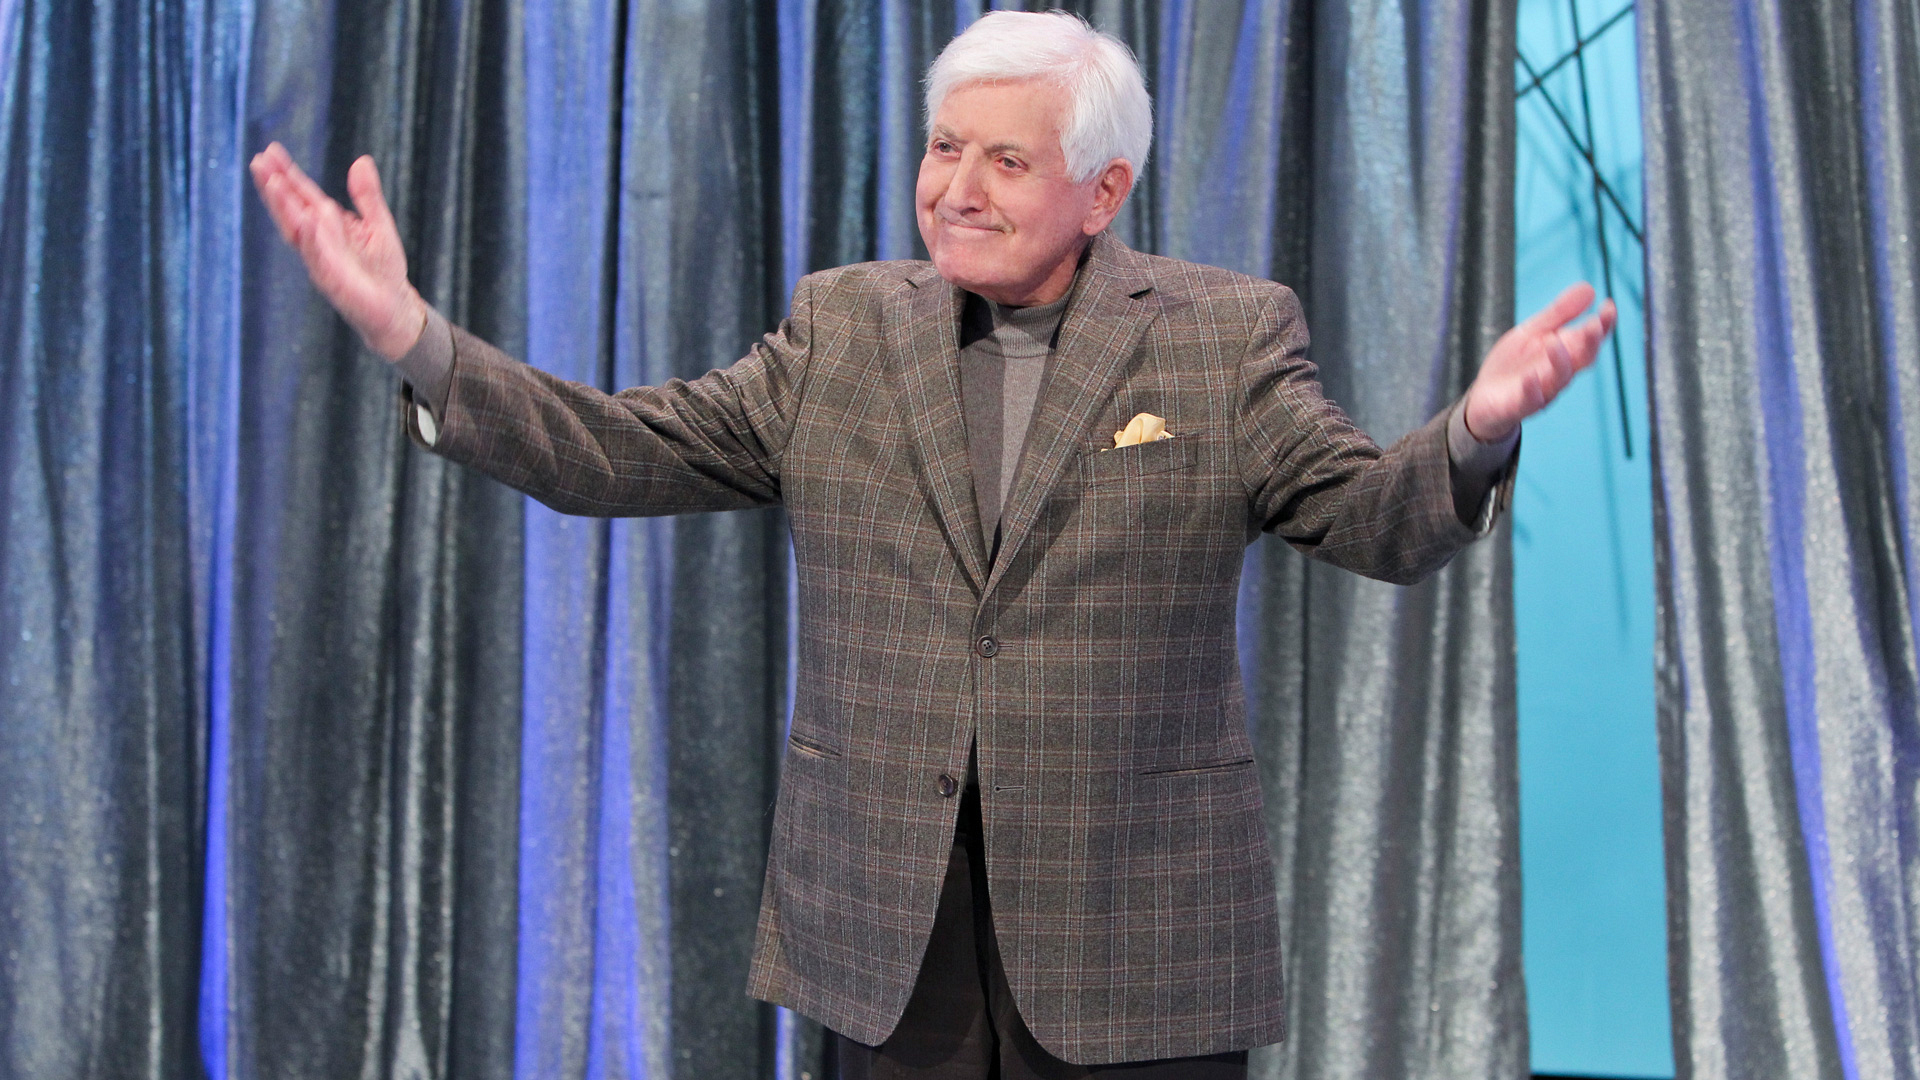 Monty Hall, co-creator and former host of Let's Make A Deal, has passed away.